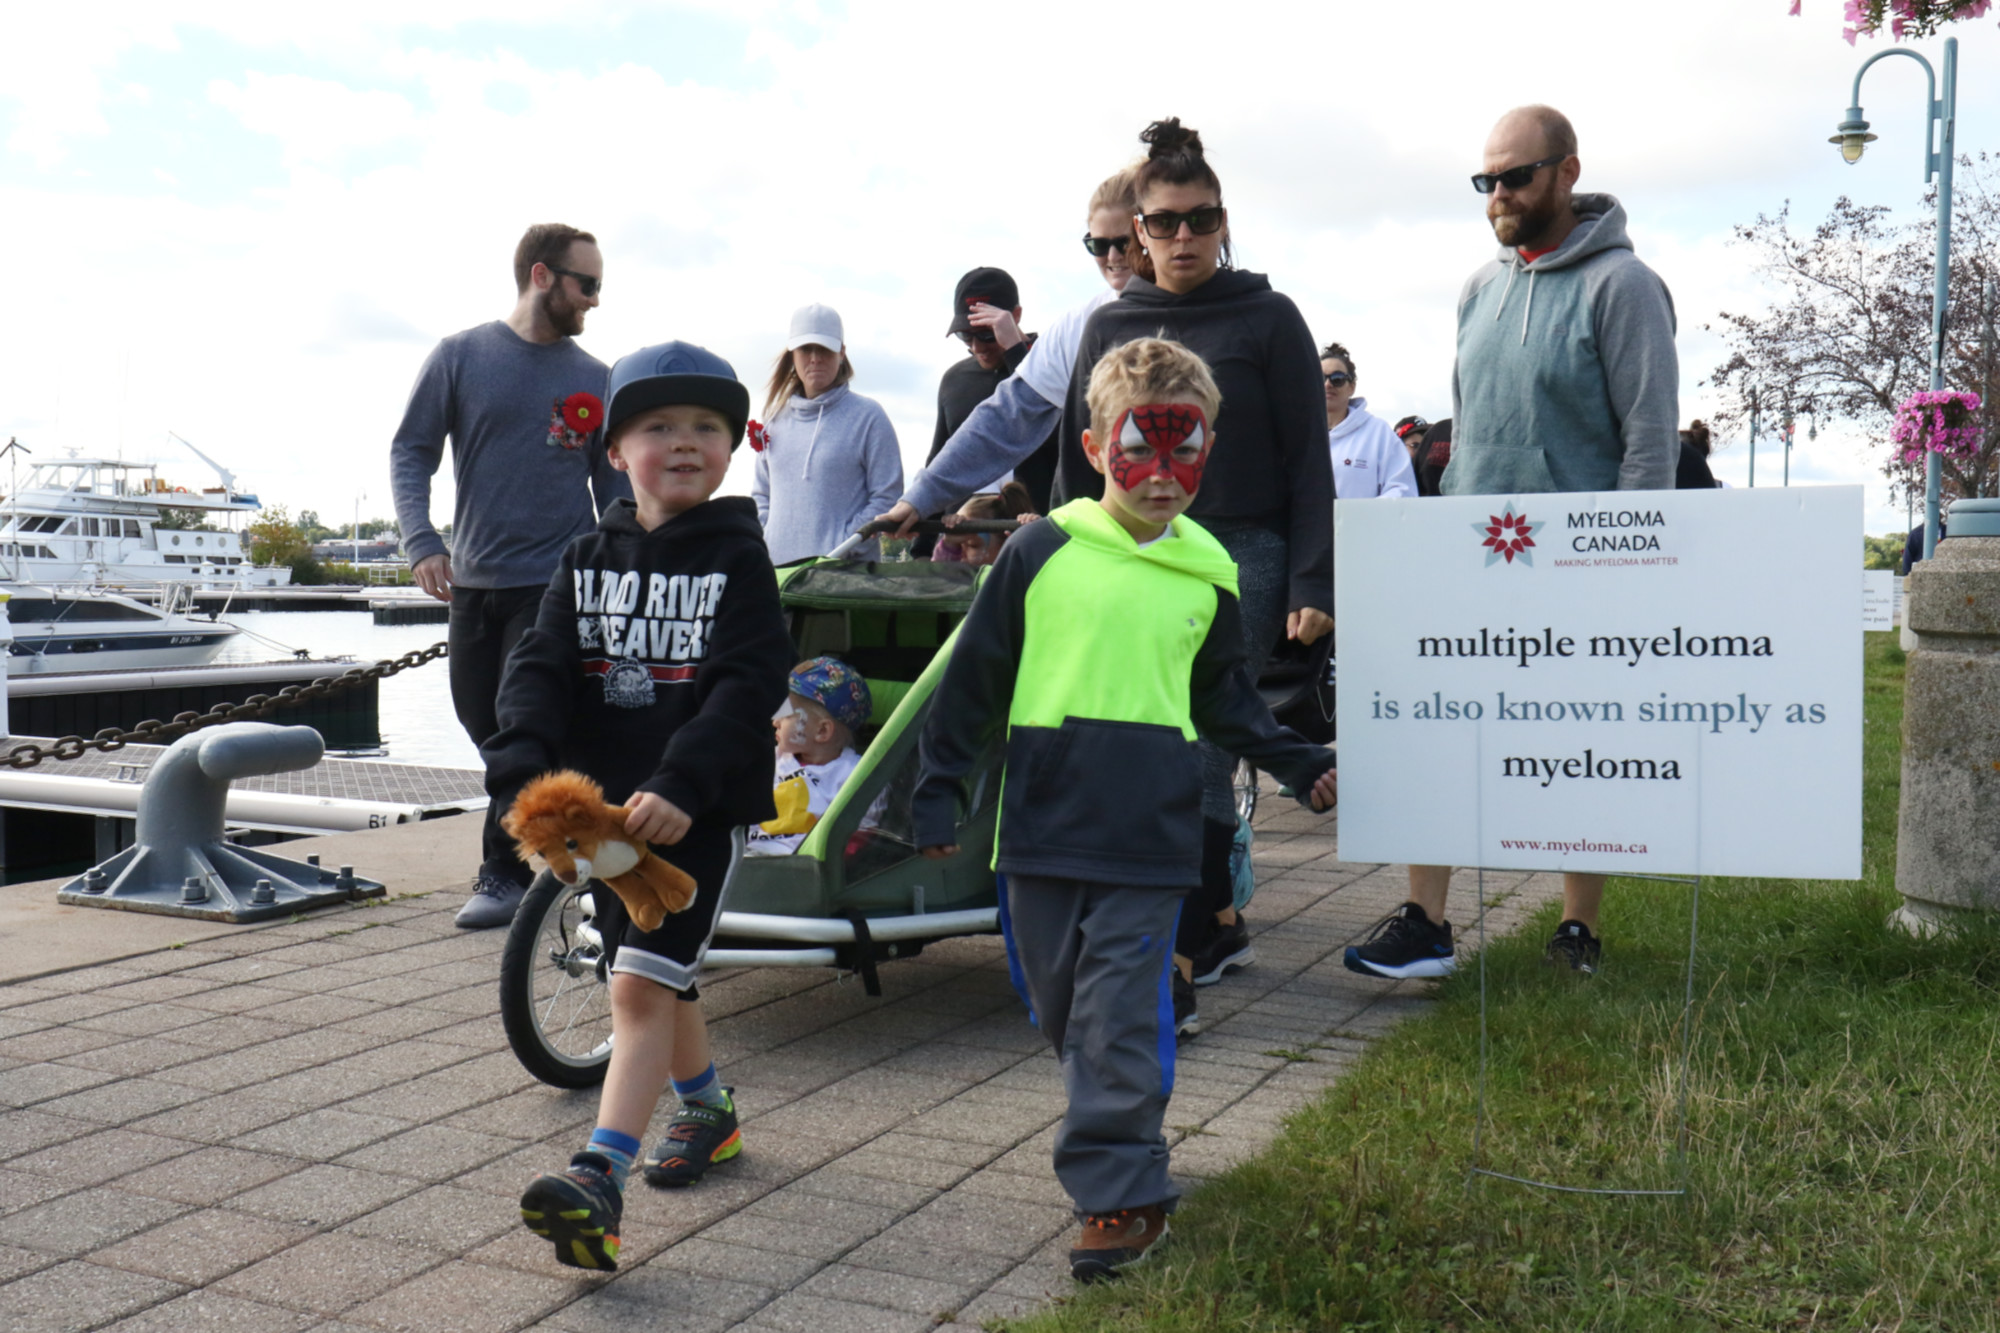 Marching for myeloma in the Sault (8 photos) - SooToday com